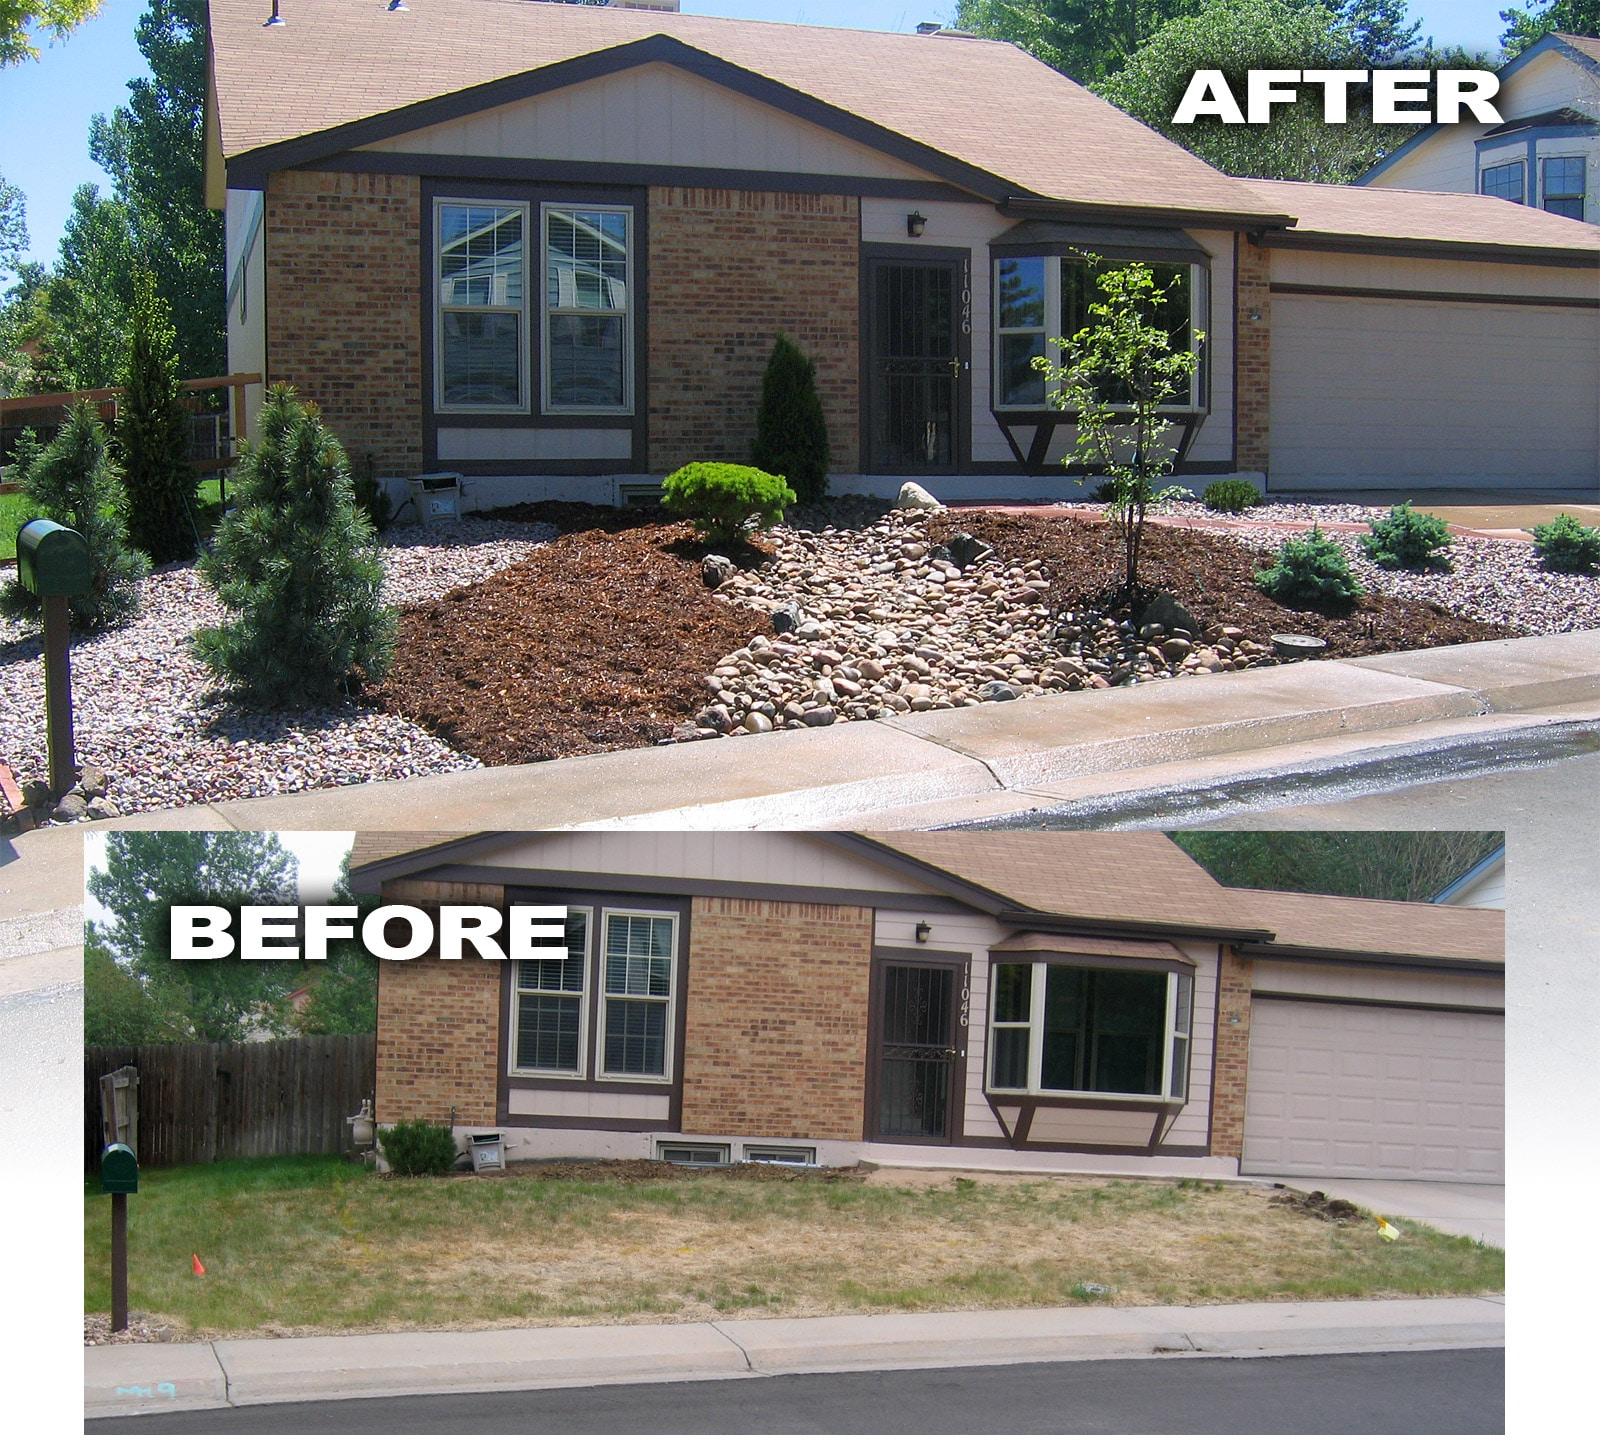 House Before After Ryno Lawn Care Llc